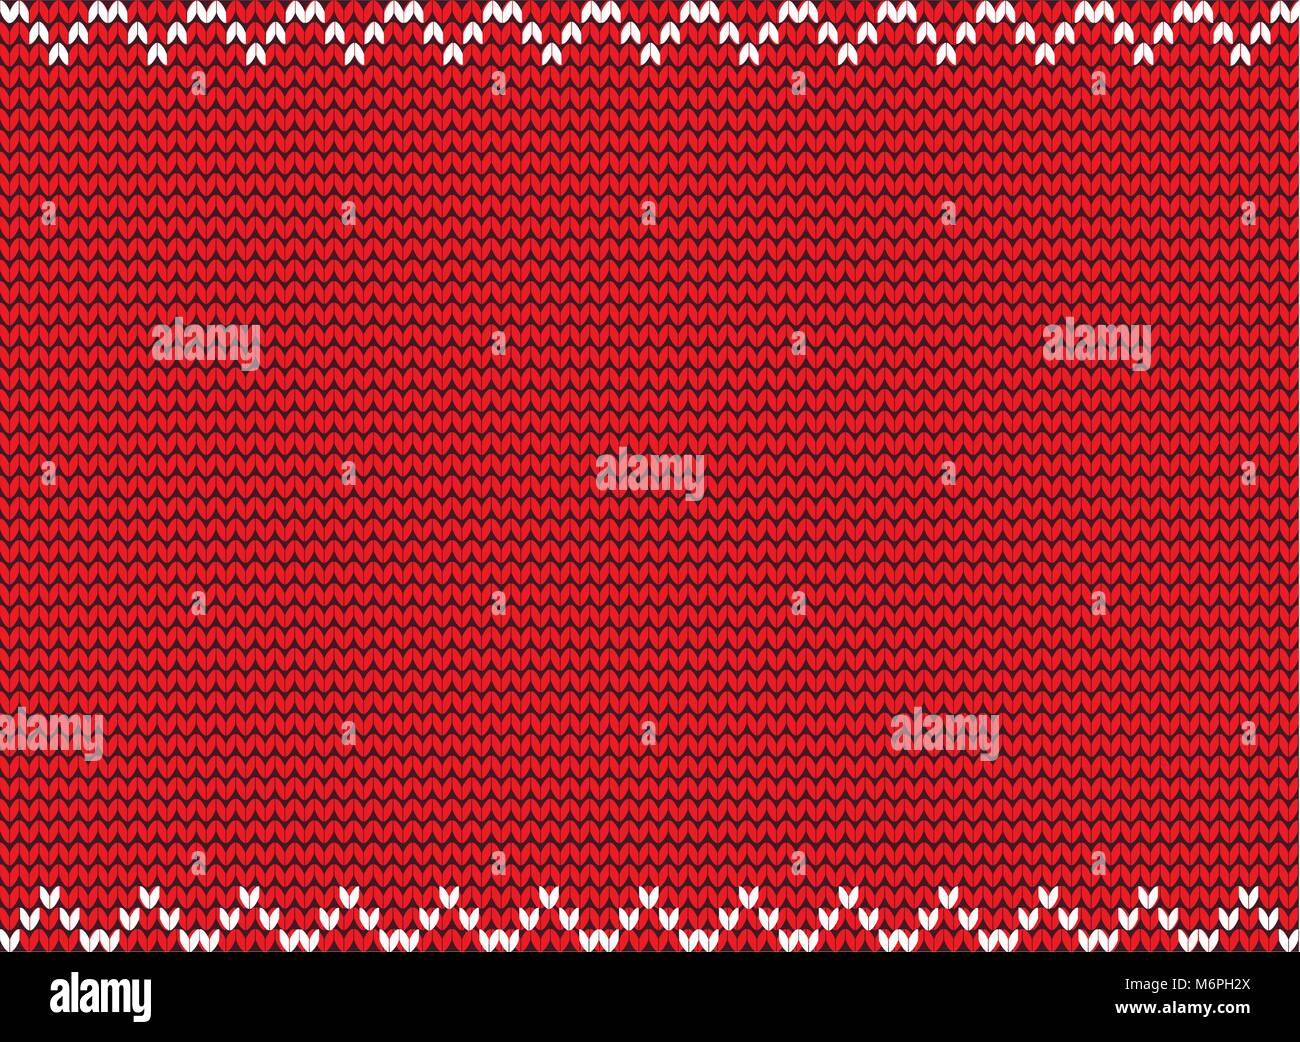 vector illustration of red knitted background knitting pattern with